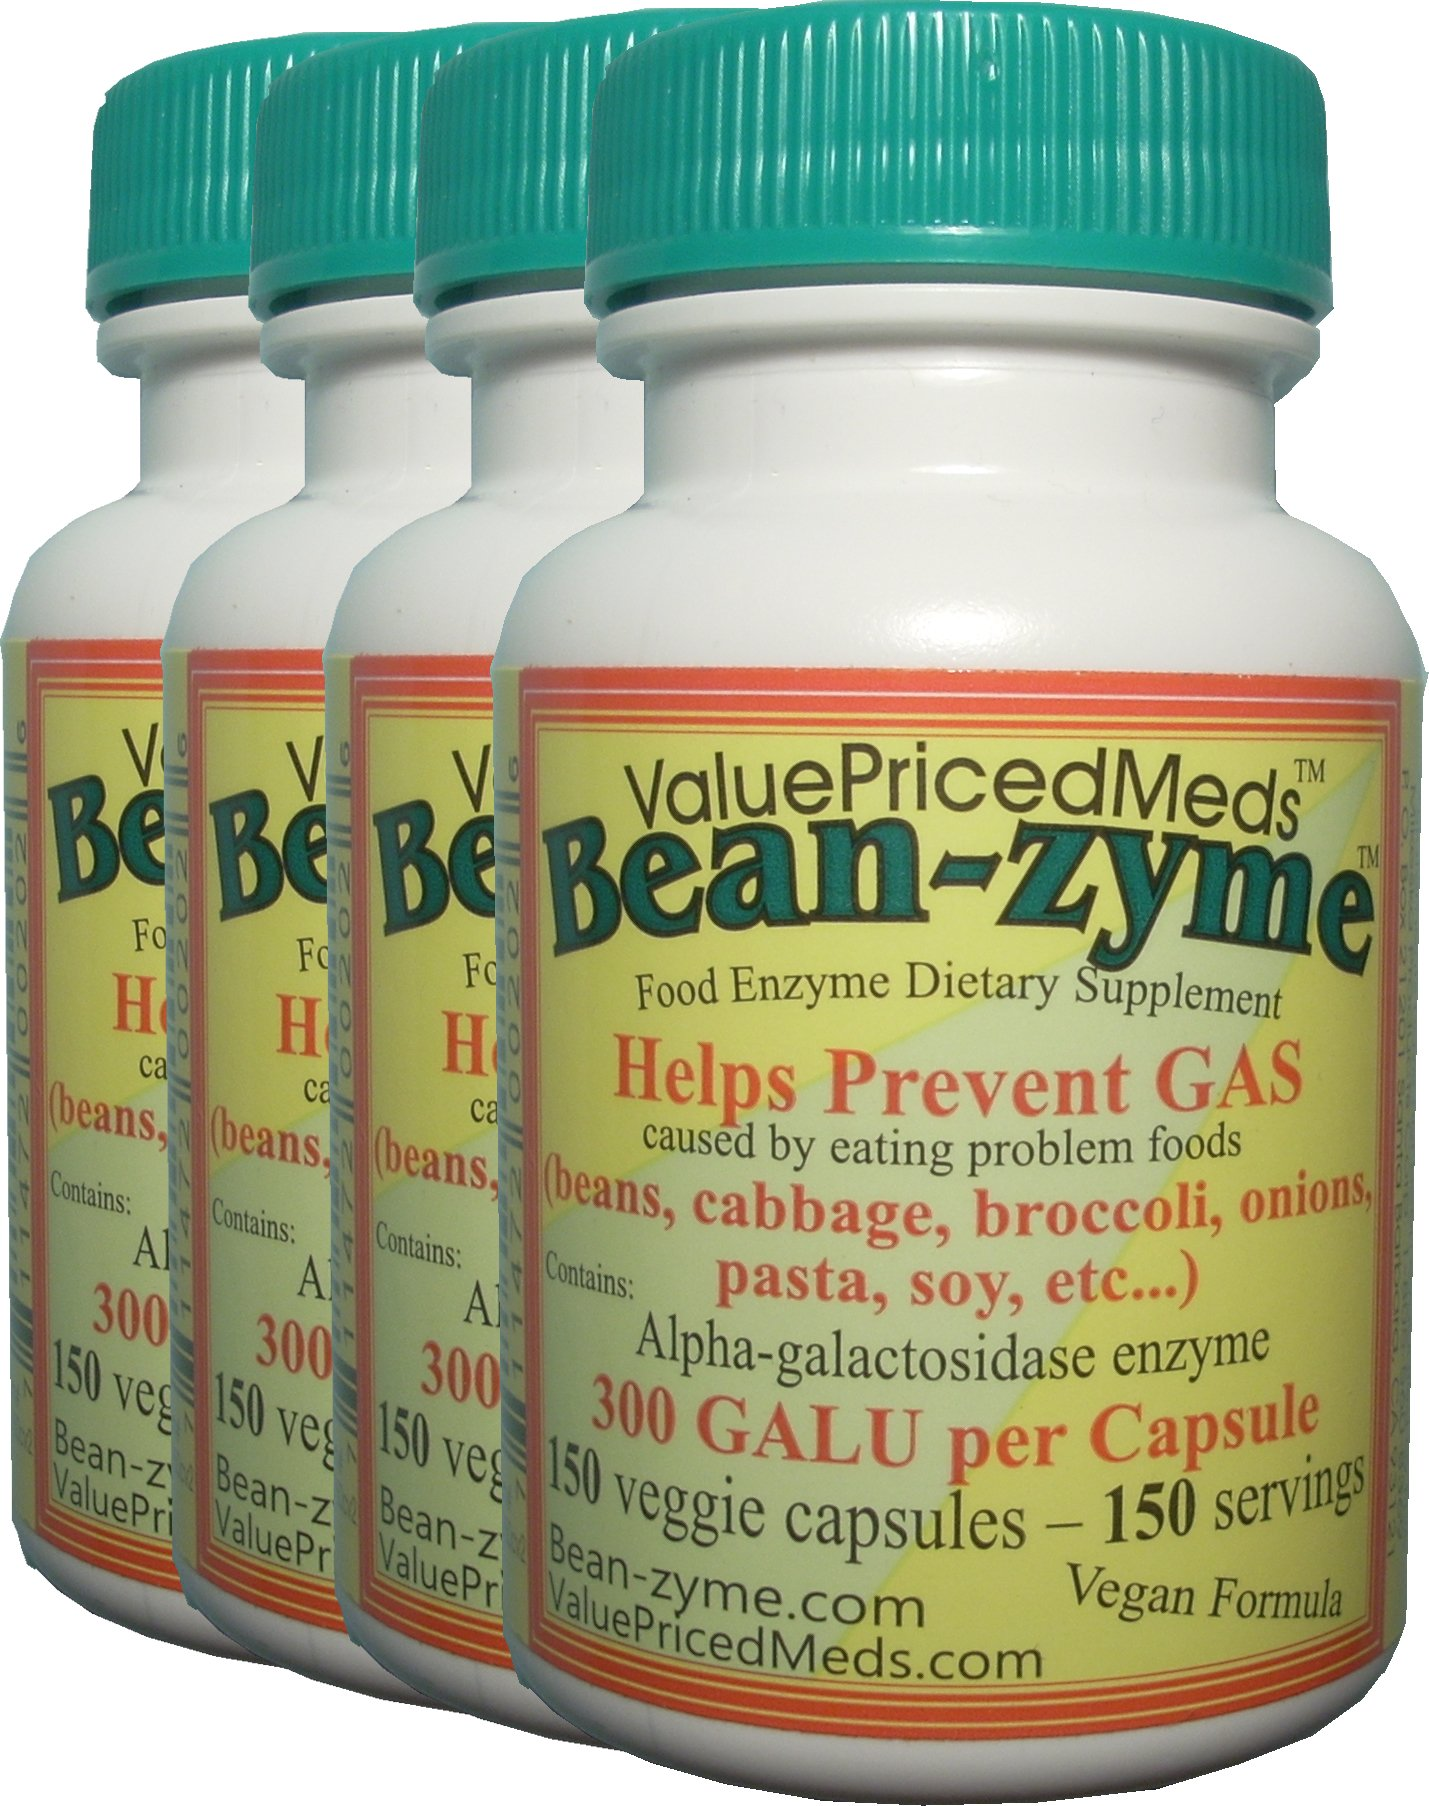 Bean-zyme VEGAN anti-gas 150 Capsules per bottle 4 Pack (600 capsules total). 300 GALU/cap compare to Beano 150 GALU/cap